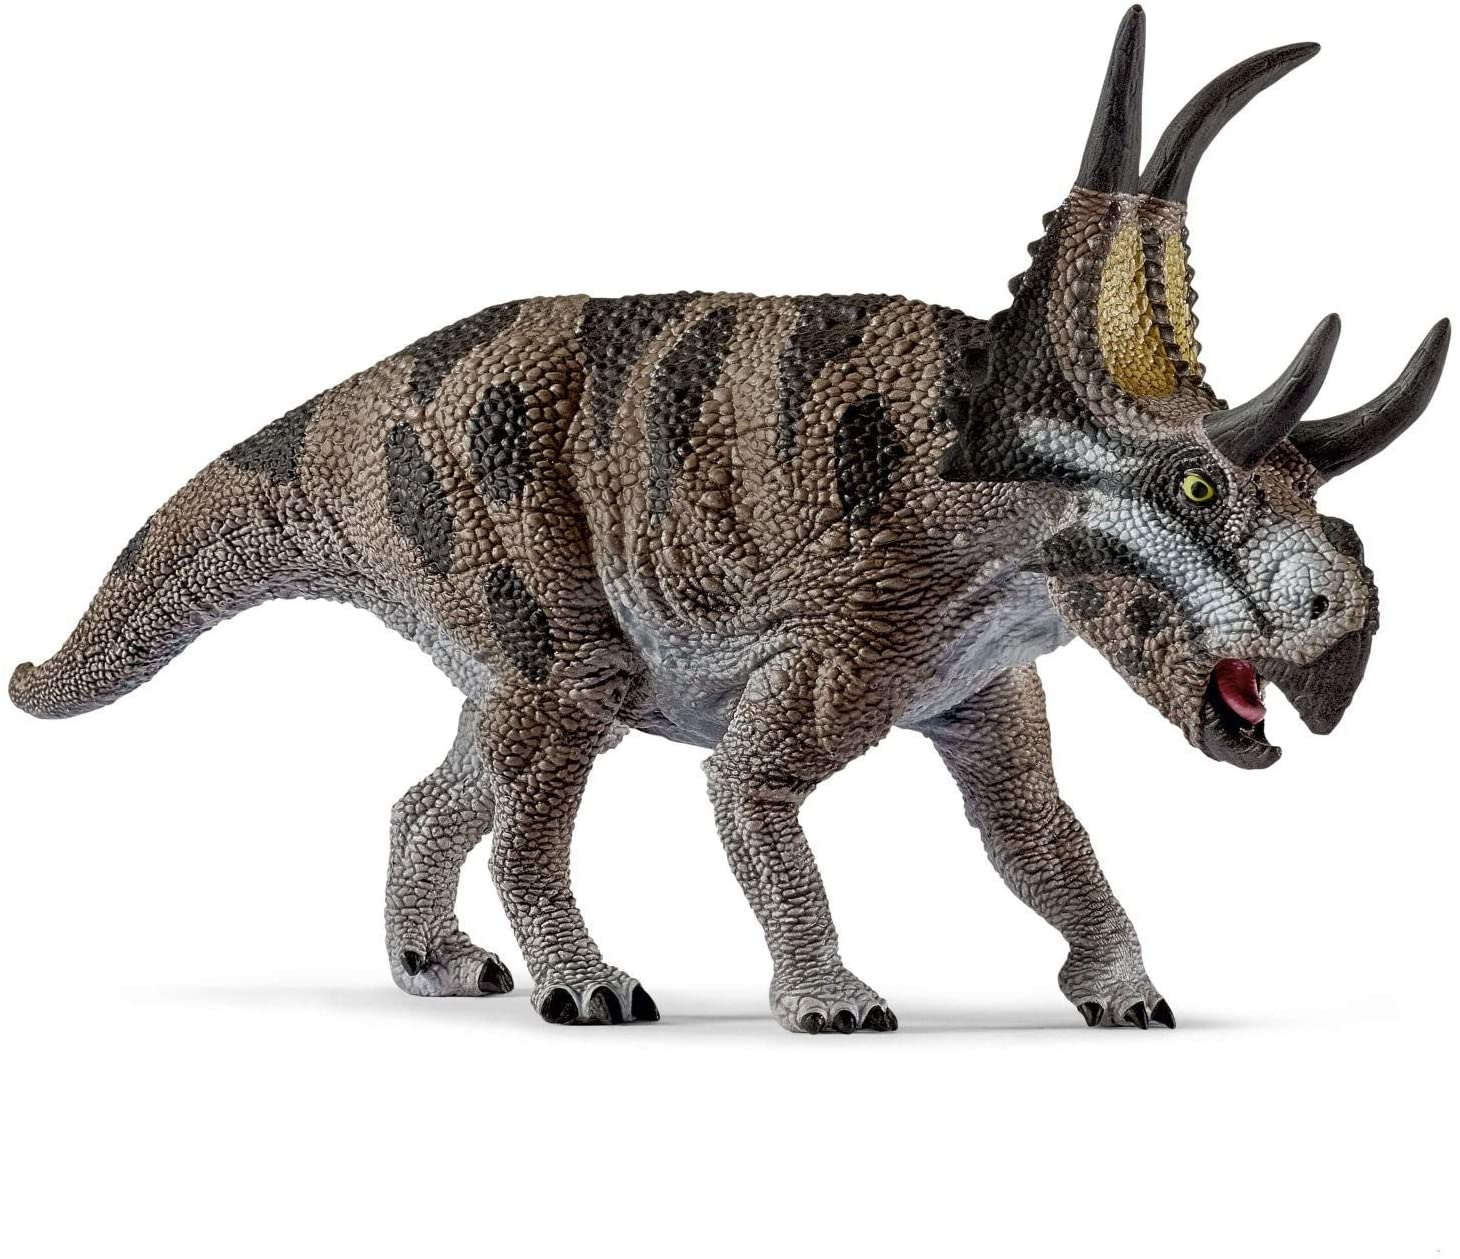 Schleich Dinosaurs Diabloceratops Educational Figurine for Kids Ages 4-12